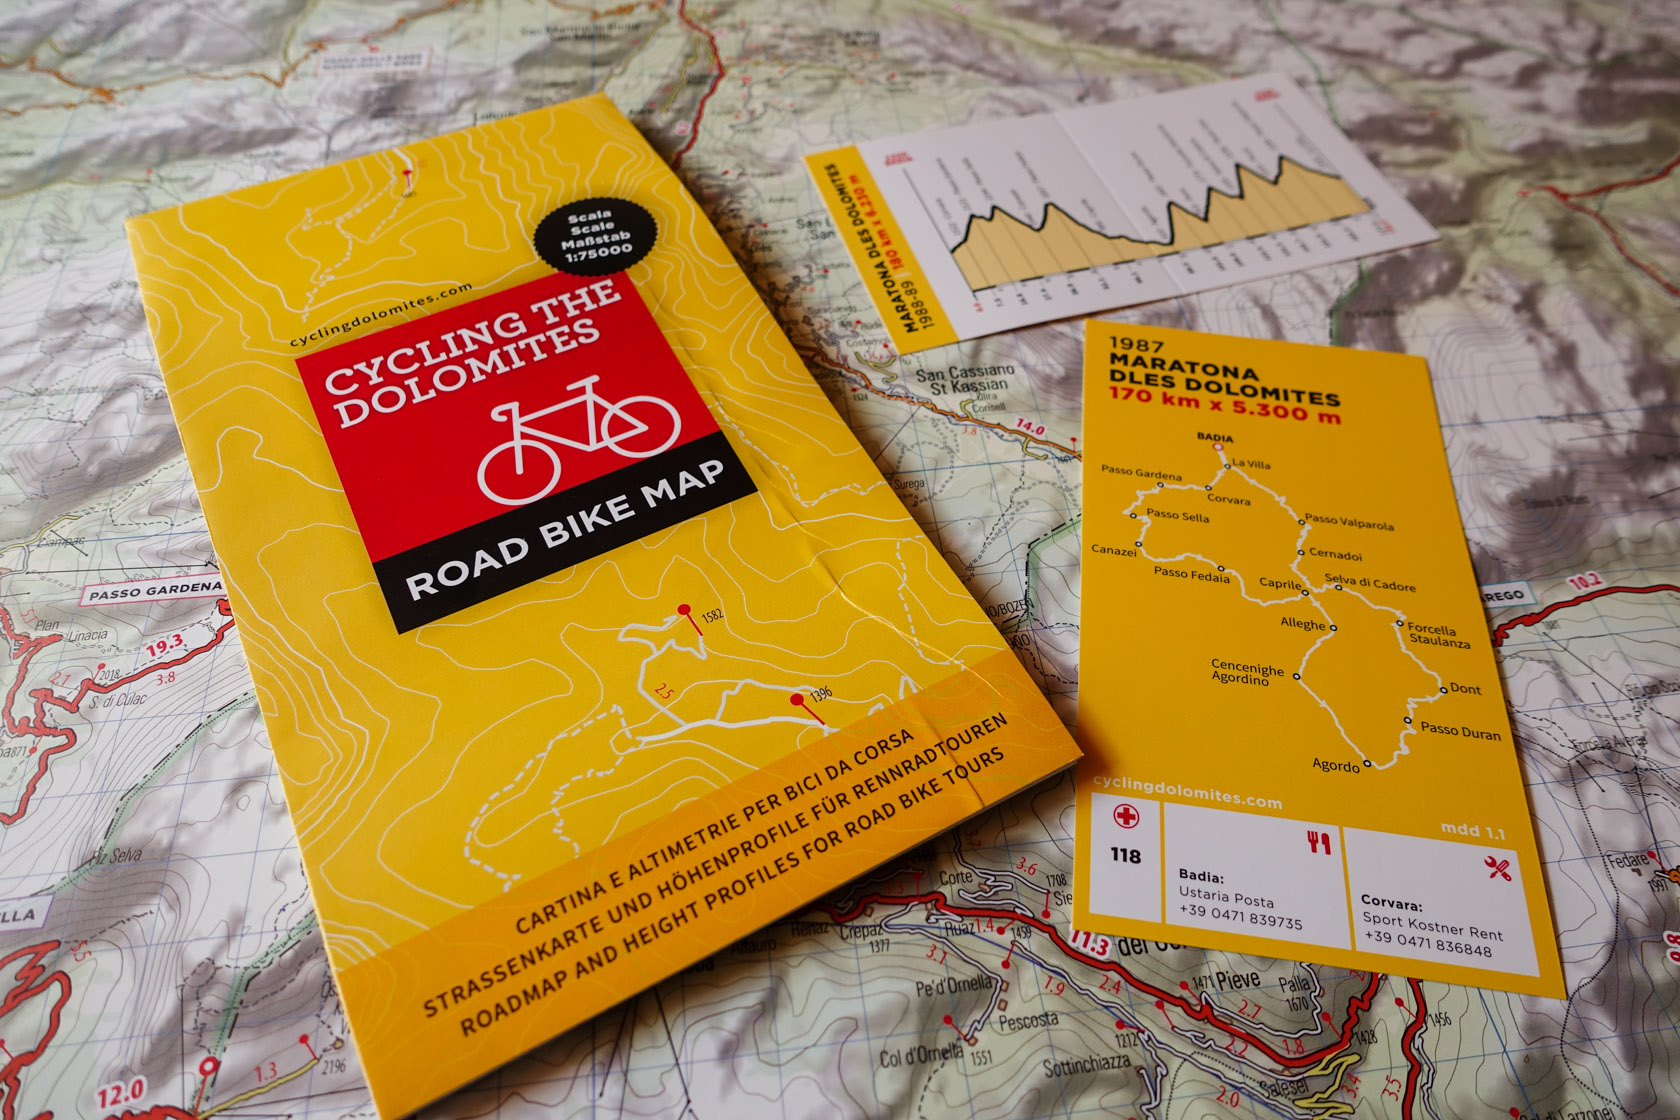 Dolomites Cycling map for roadbike